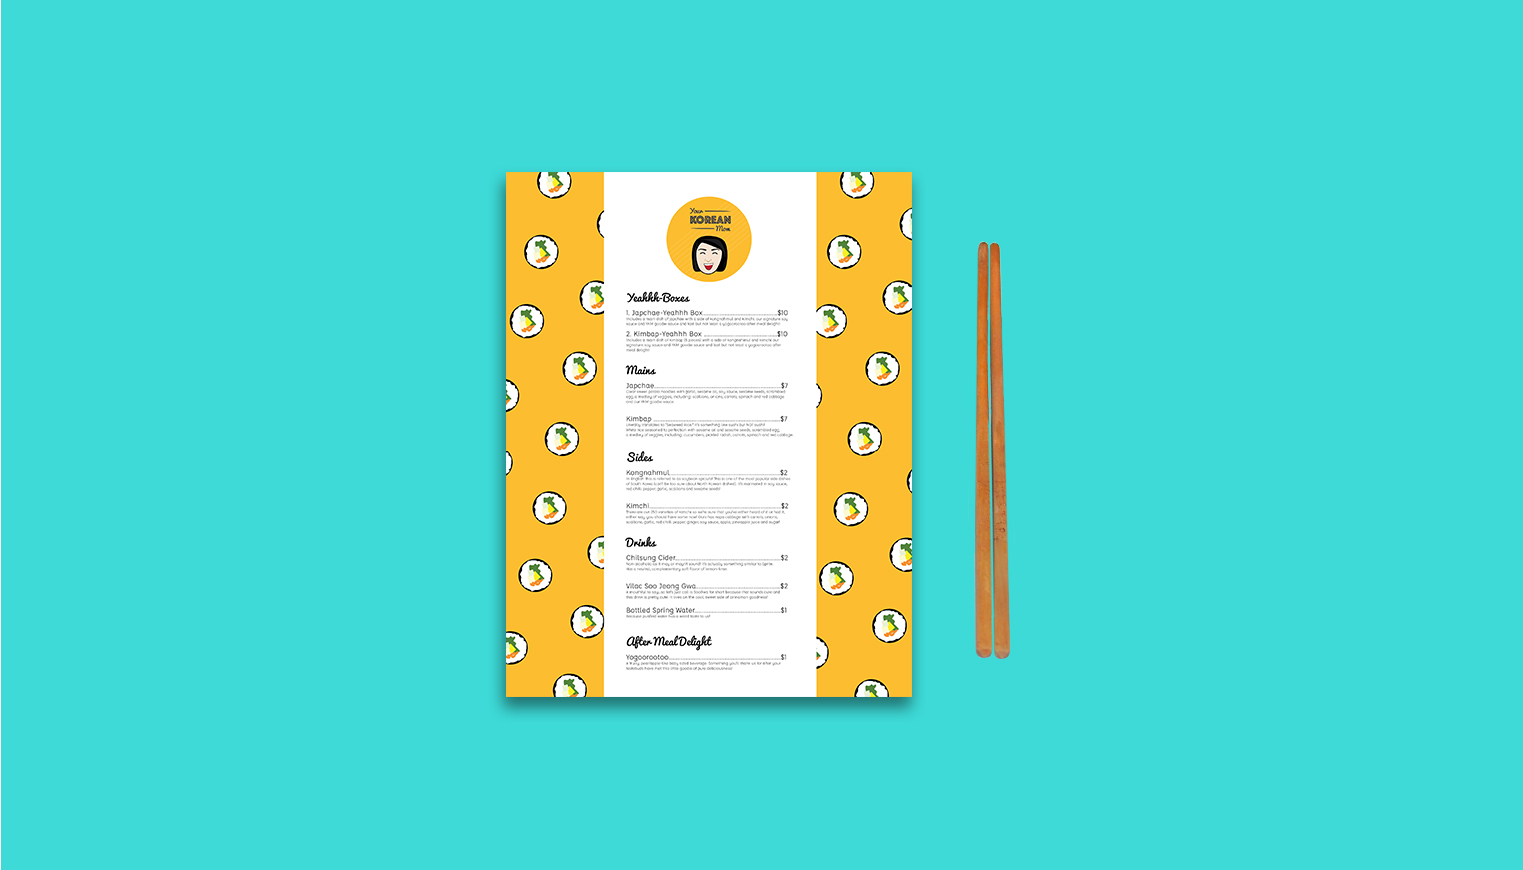 berlin-grey-creative-graphic-design-web-design-st-pete-fl-mockup-your-korean-mom-food-restaurant-menu